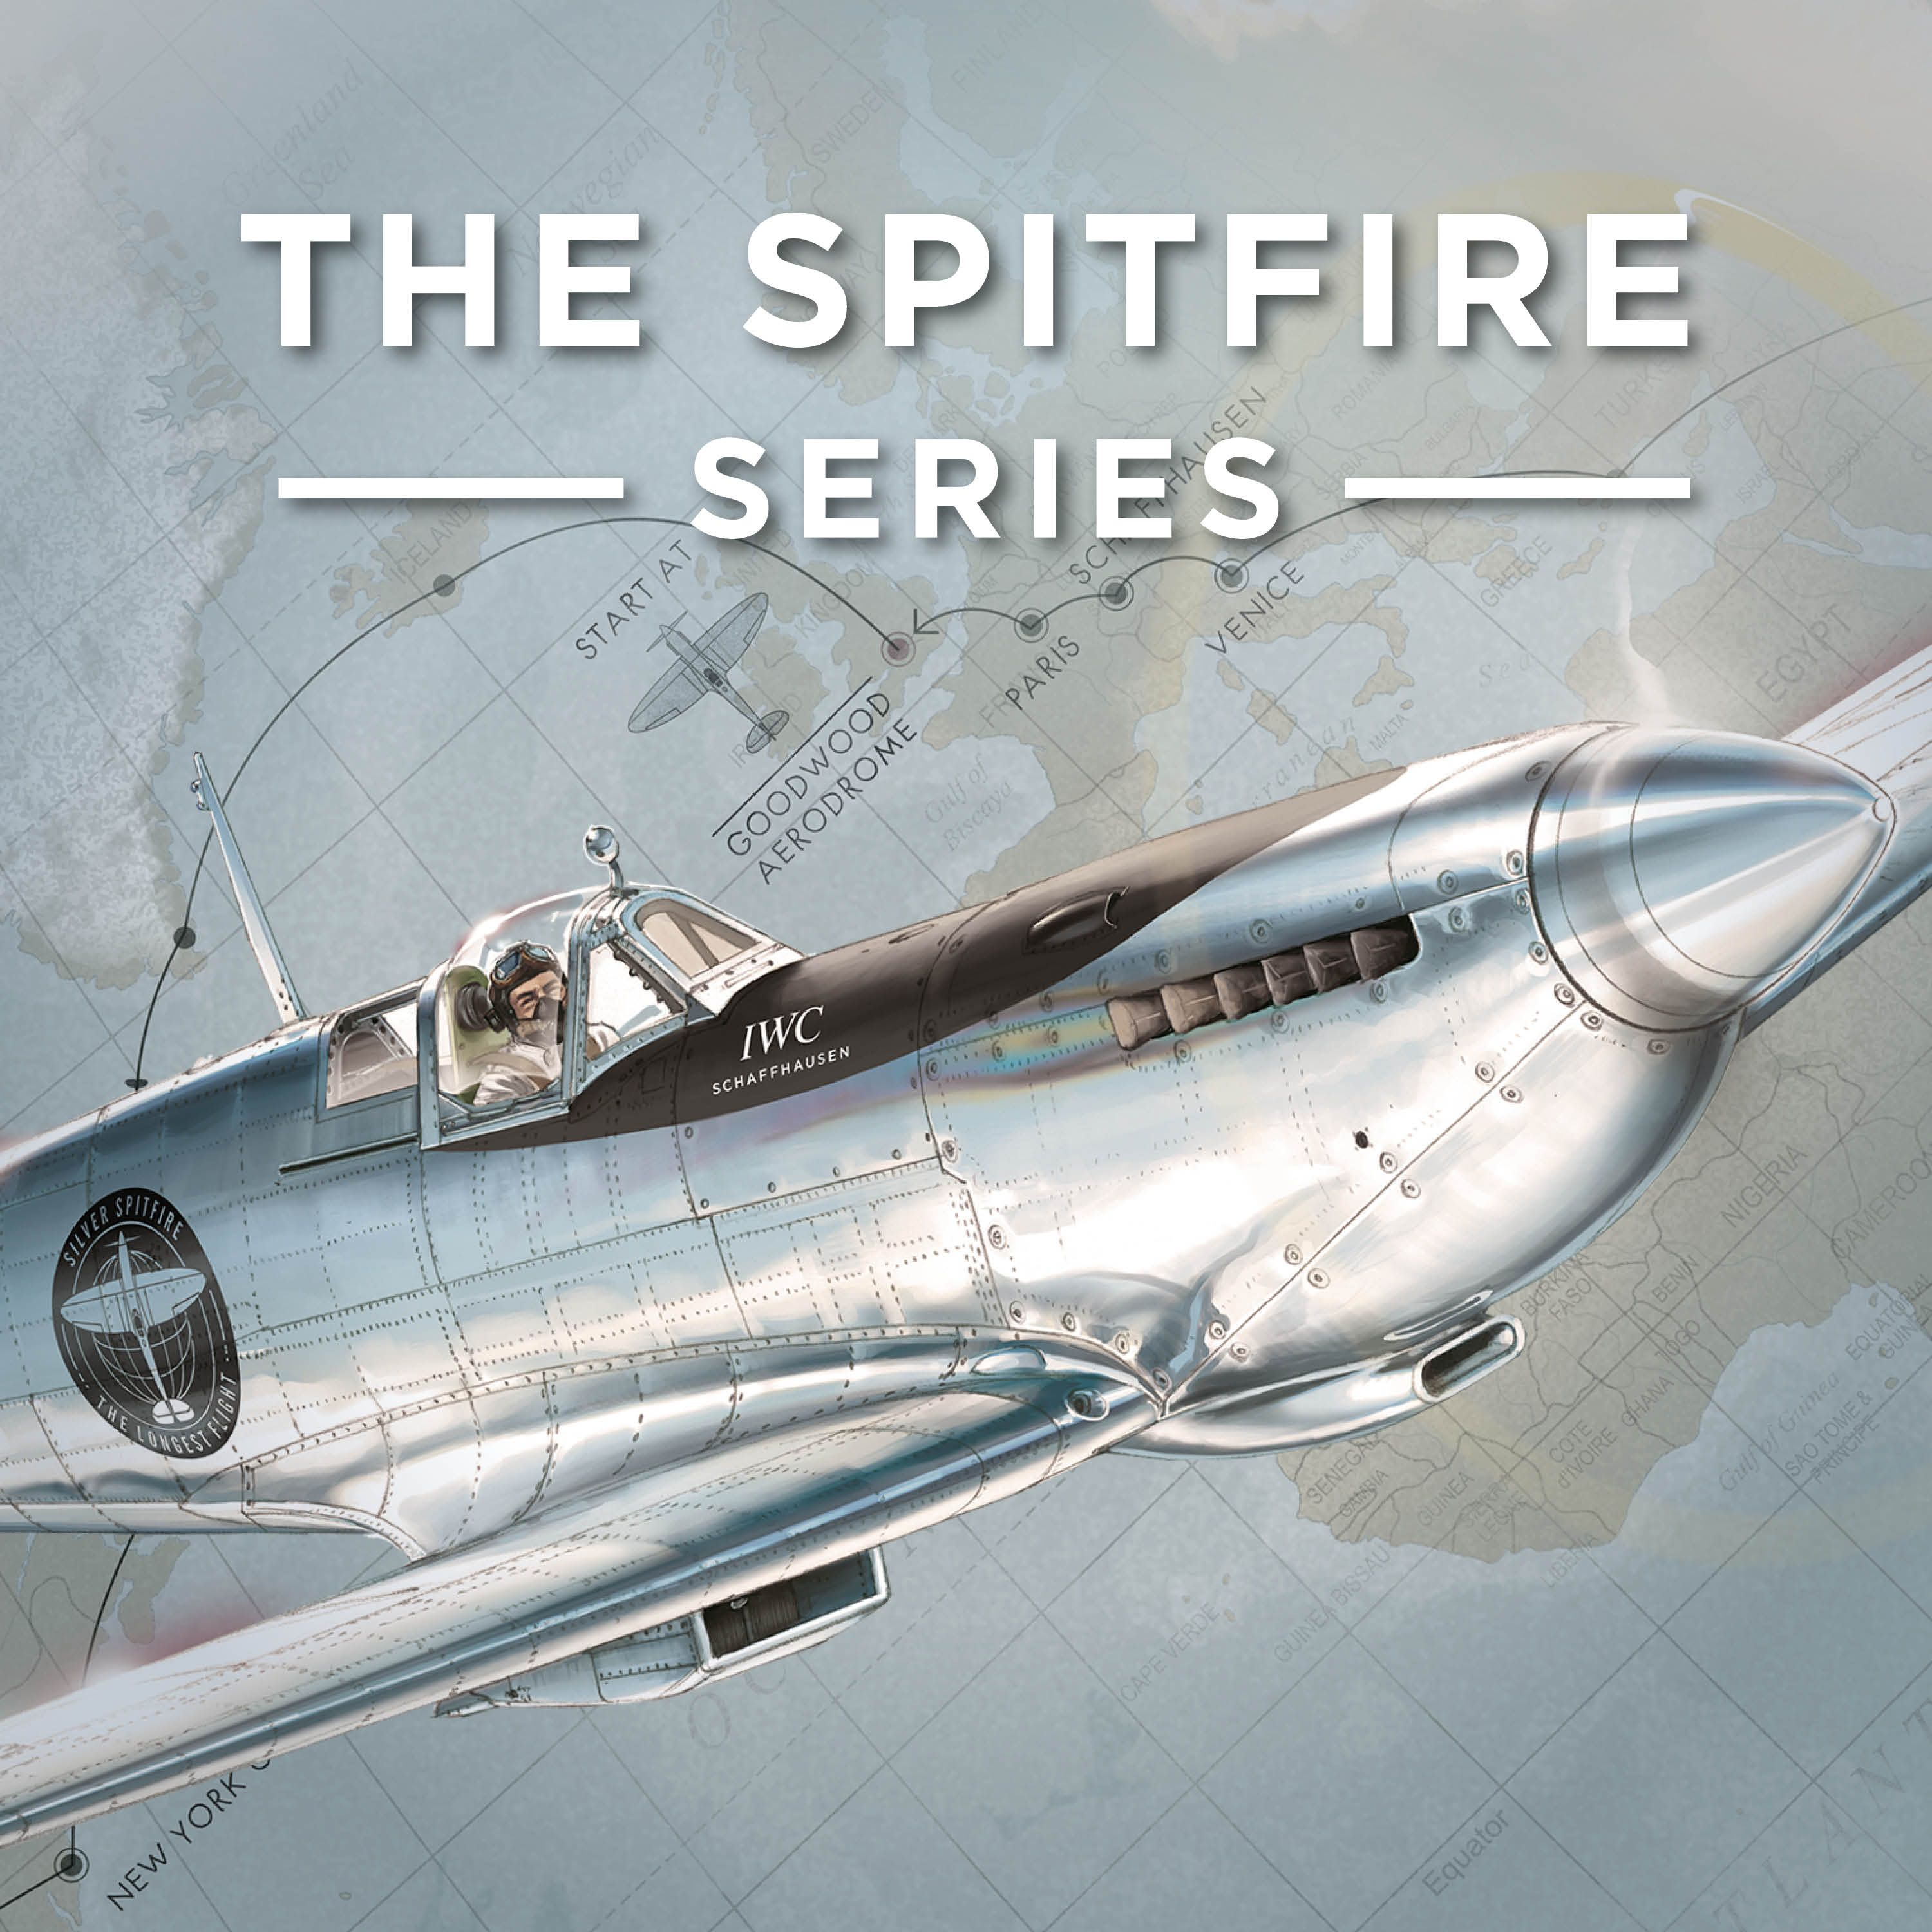 Restoring a Spitfire, with Martin Overall